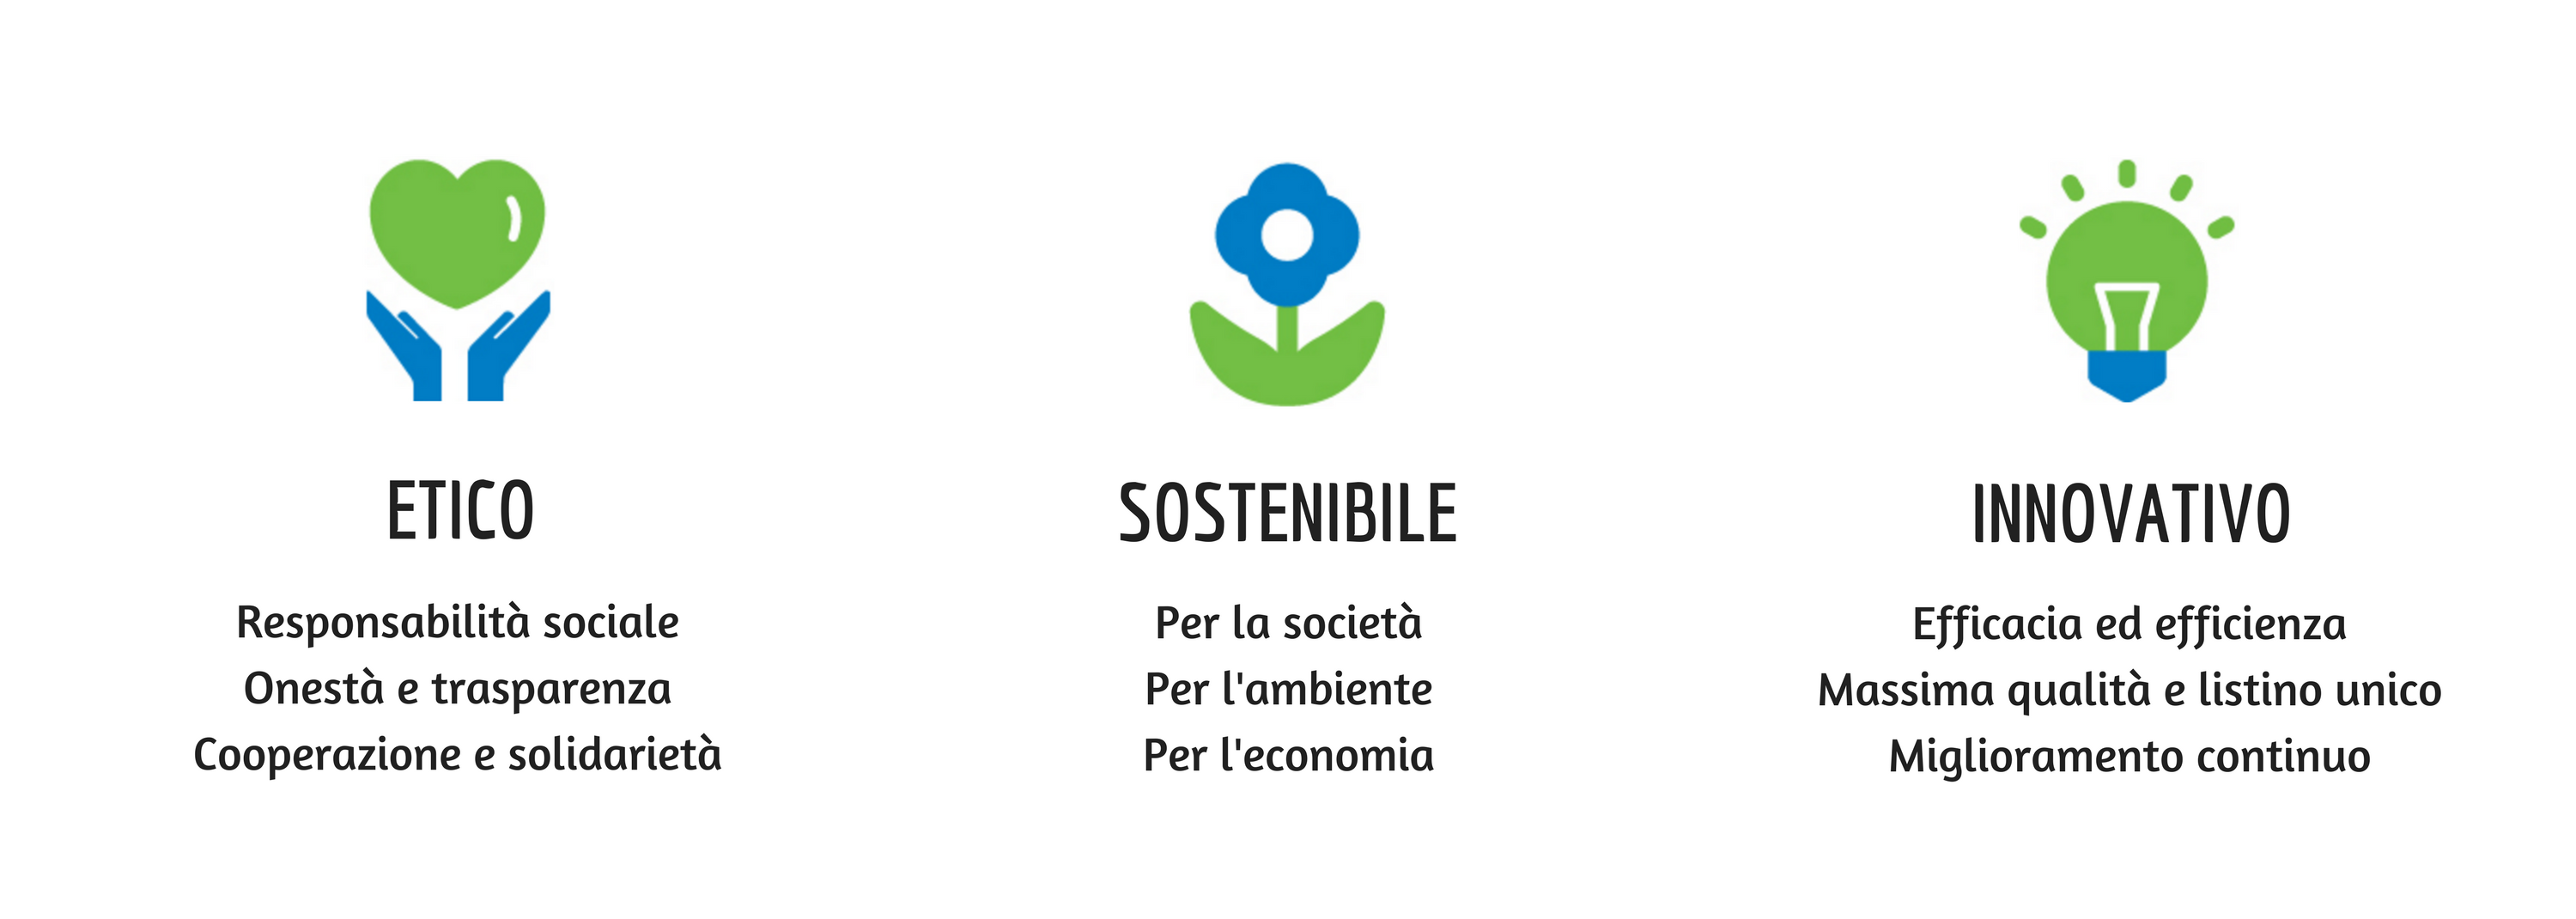 ETICO, SOSTENIBILE, INNOVATIVO